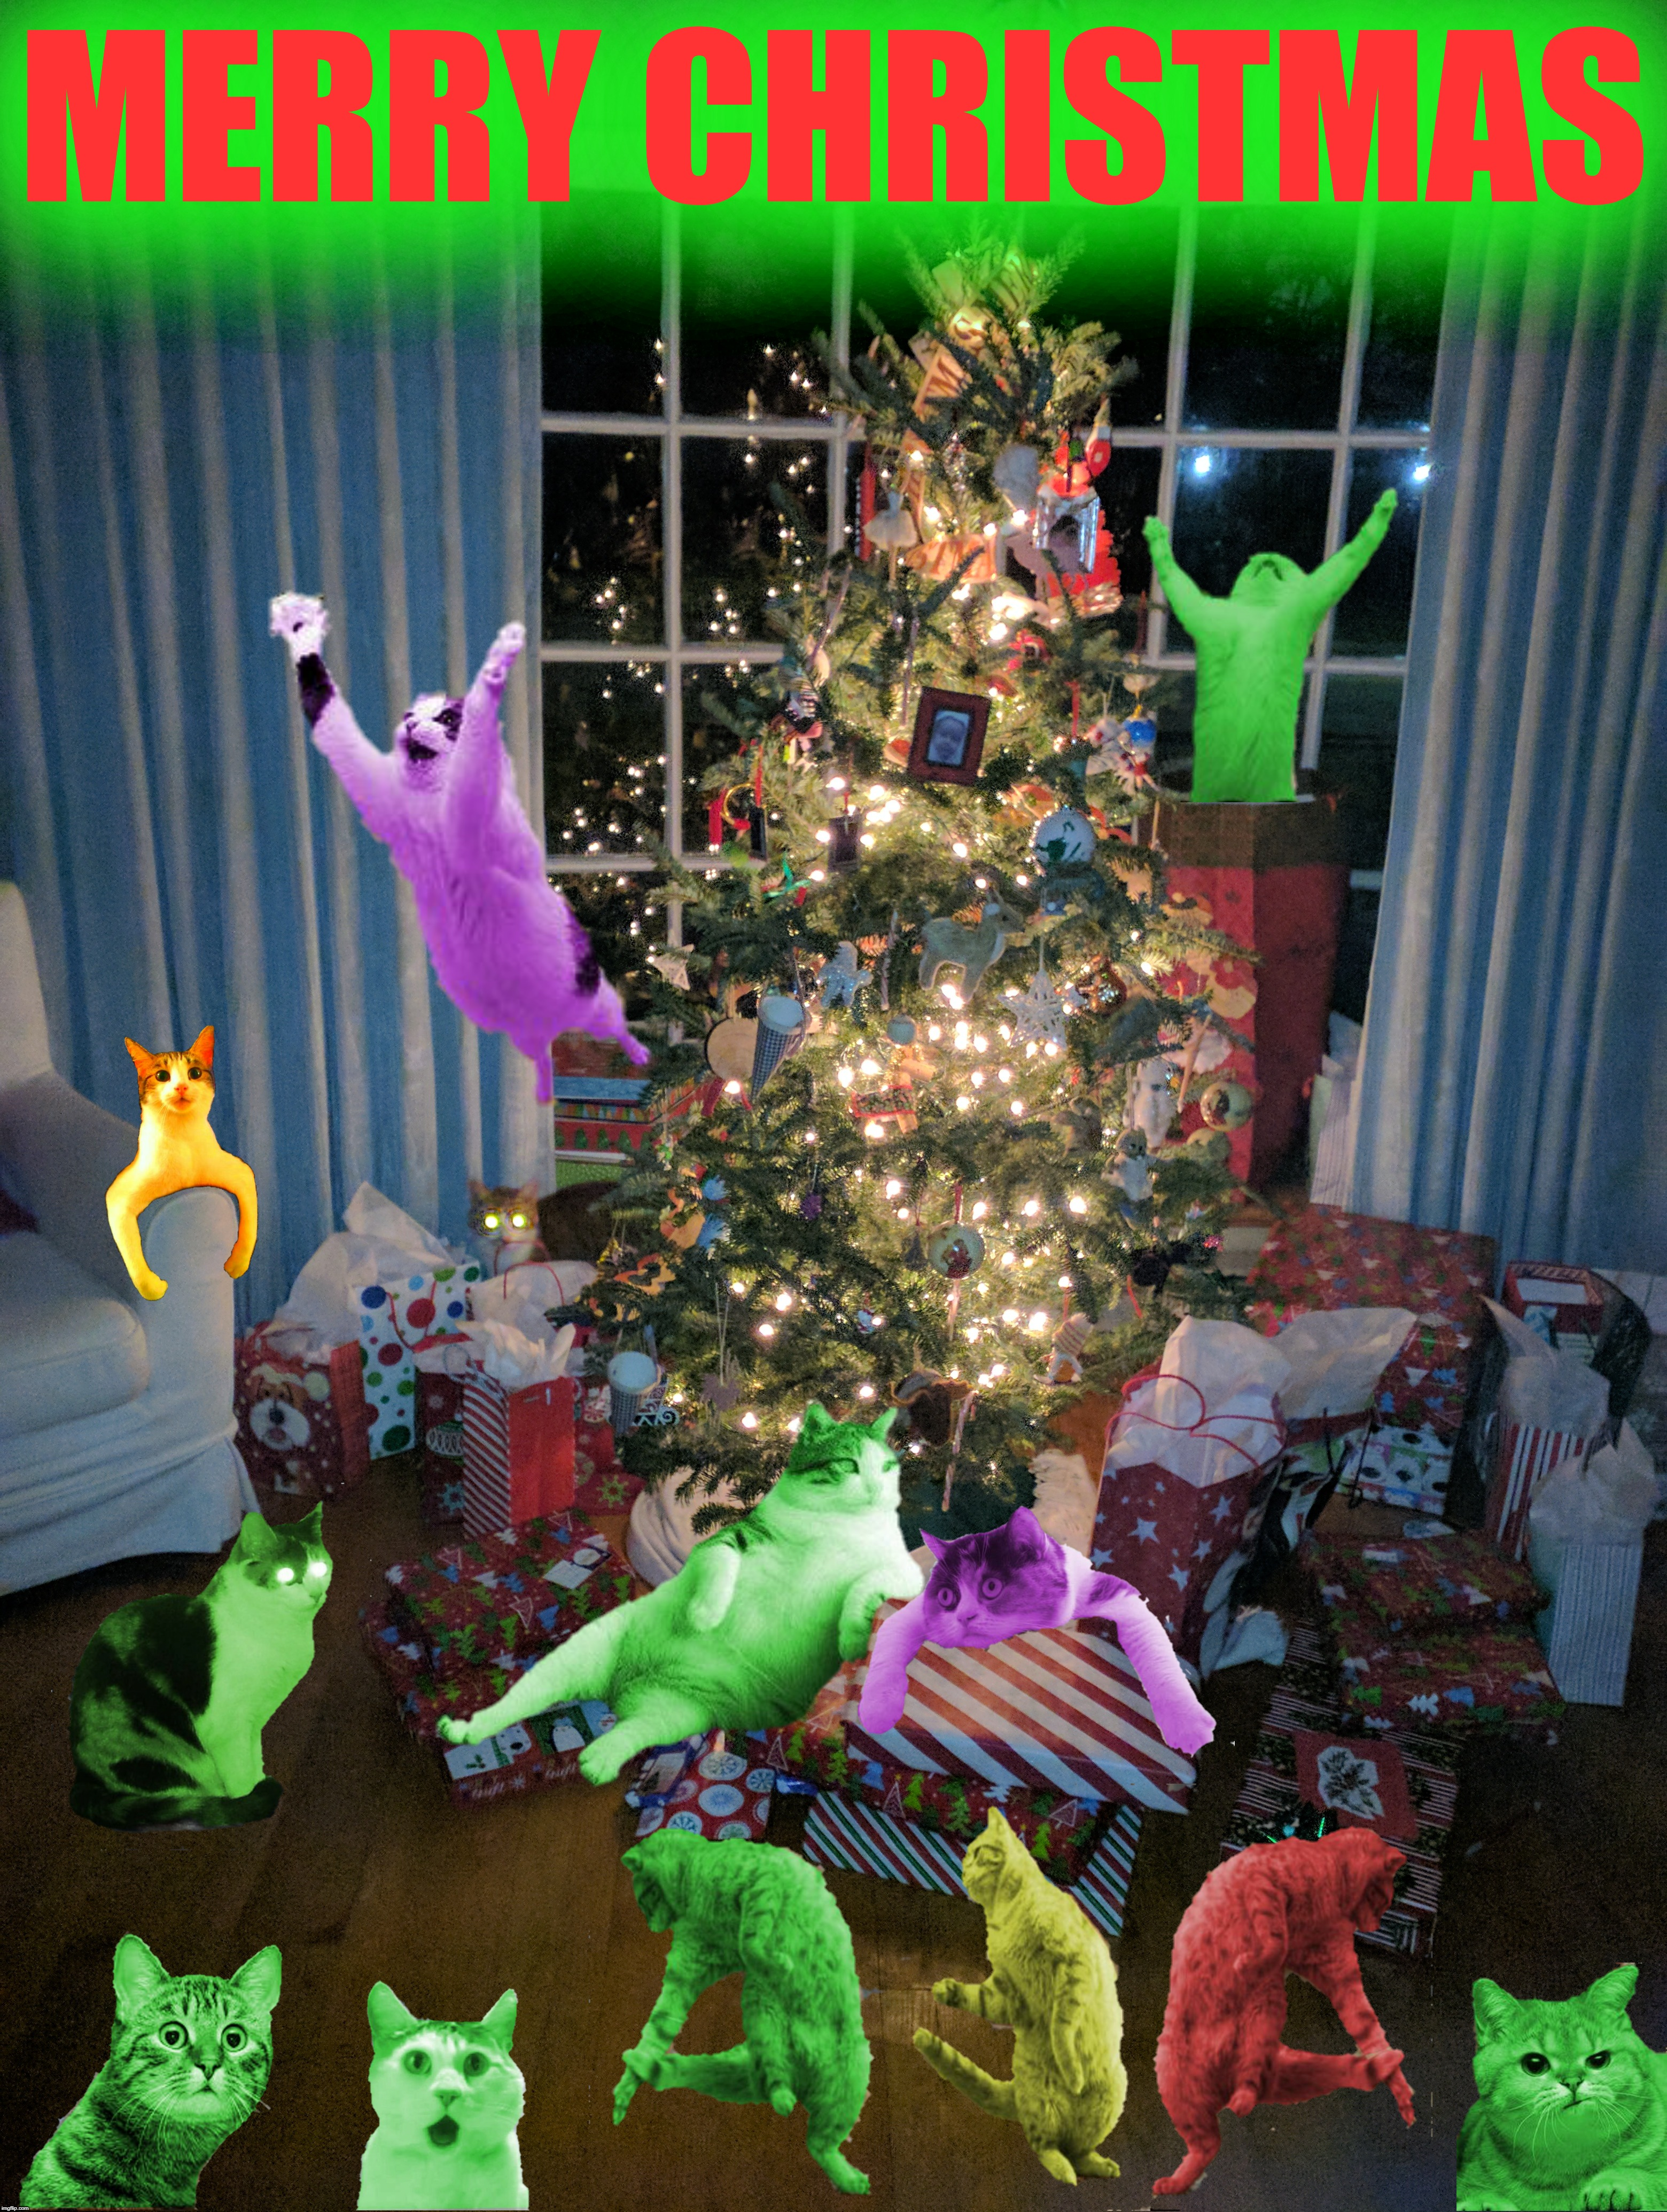 All I want for Christmas is a dozen RayCats | MERRY CHRISTMAS | image tagged in merry christmas,three dancing raycats,hypno raycat,raycat save the world,raycat is awesome,raycat christmas | made w/ Imgflip meme maker